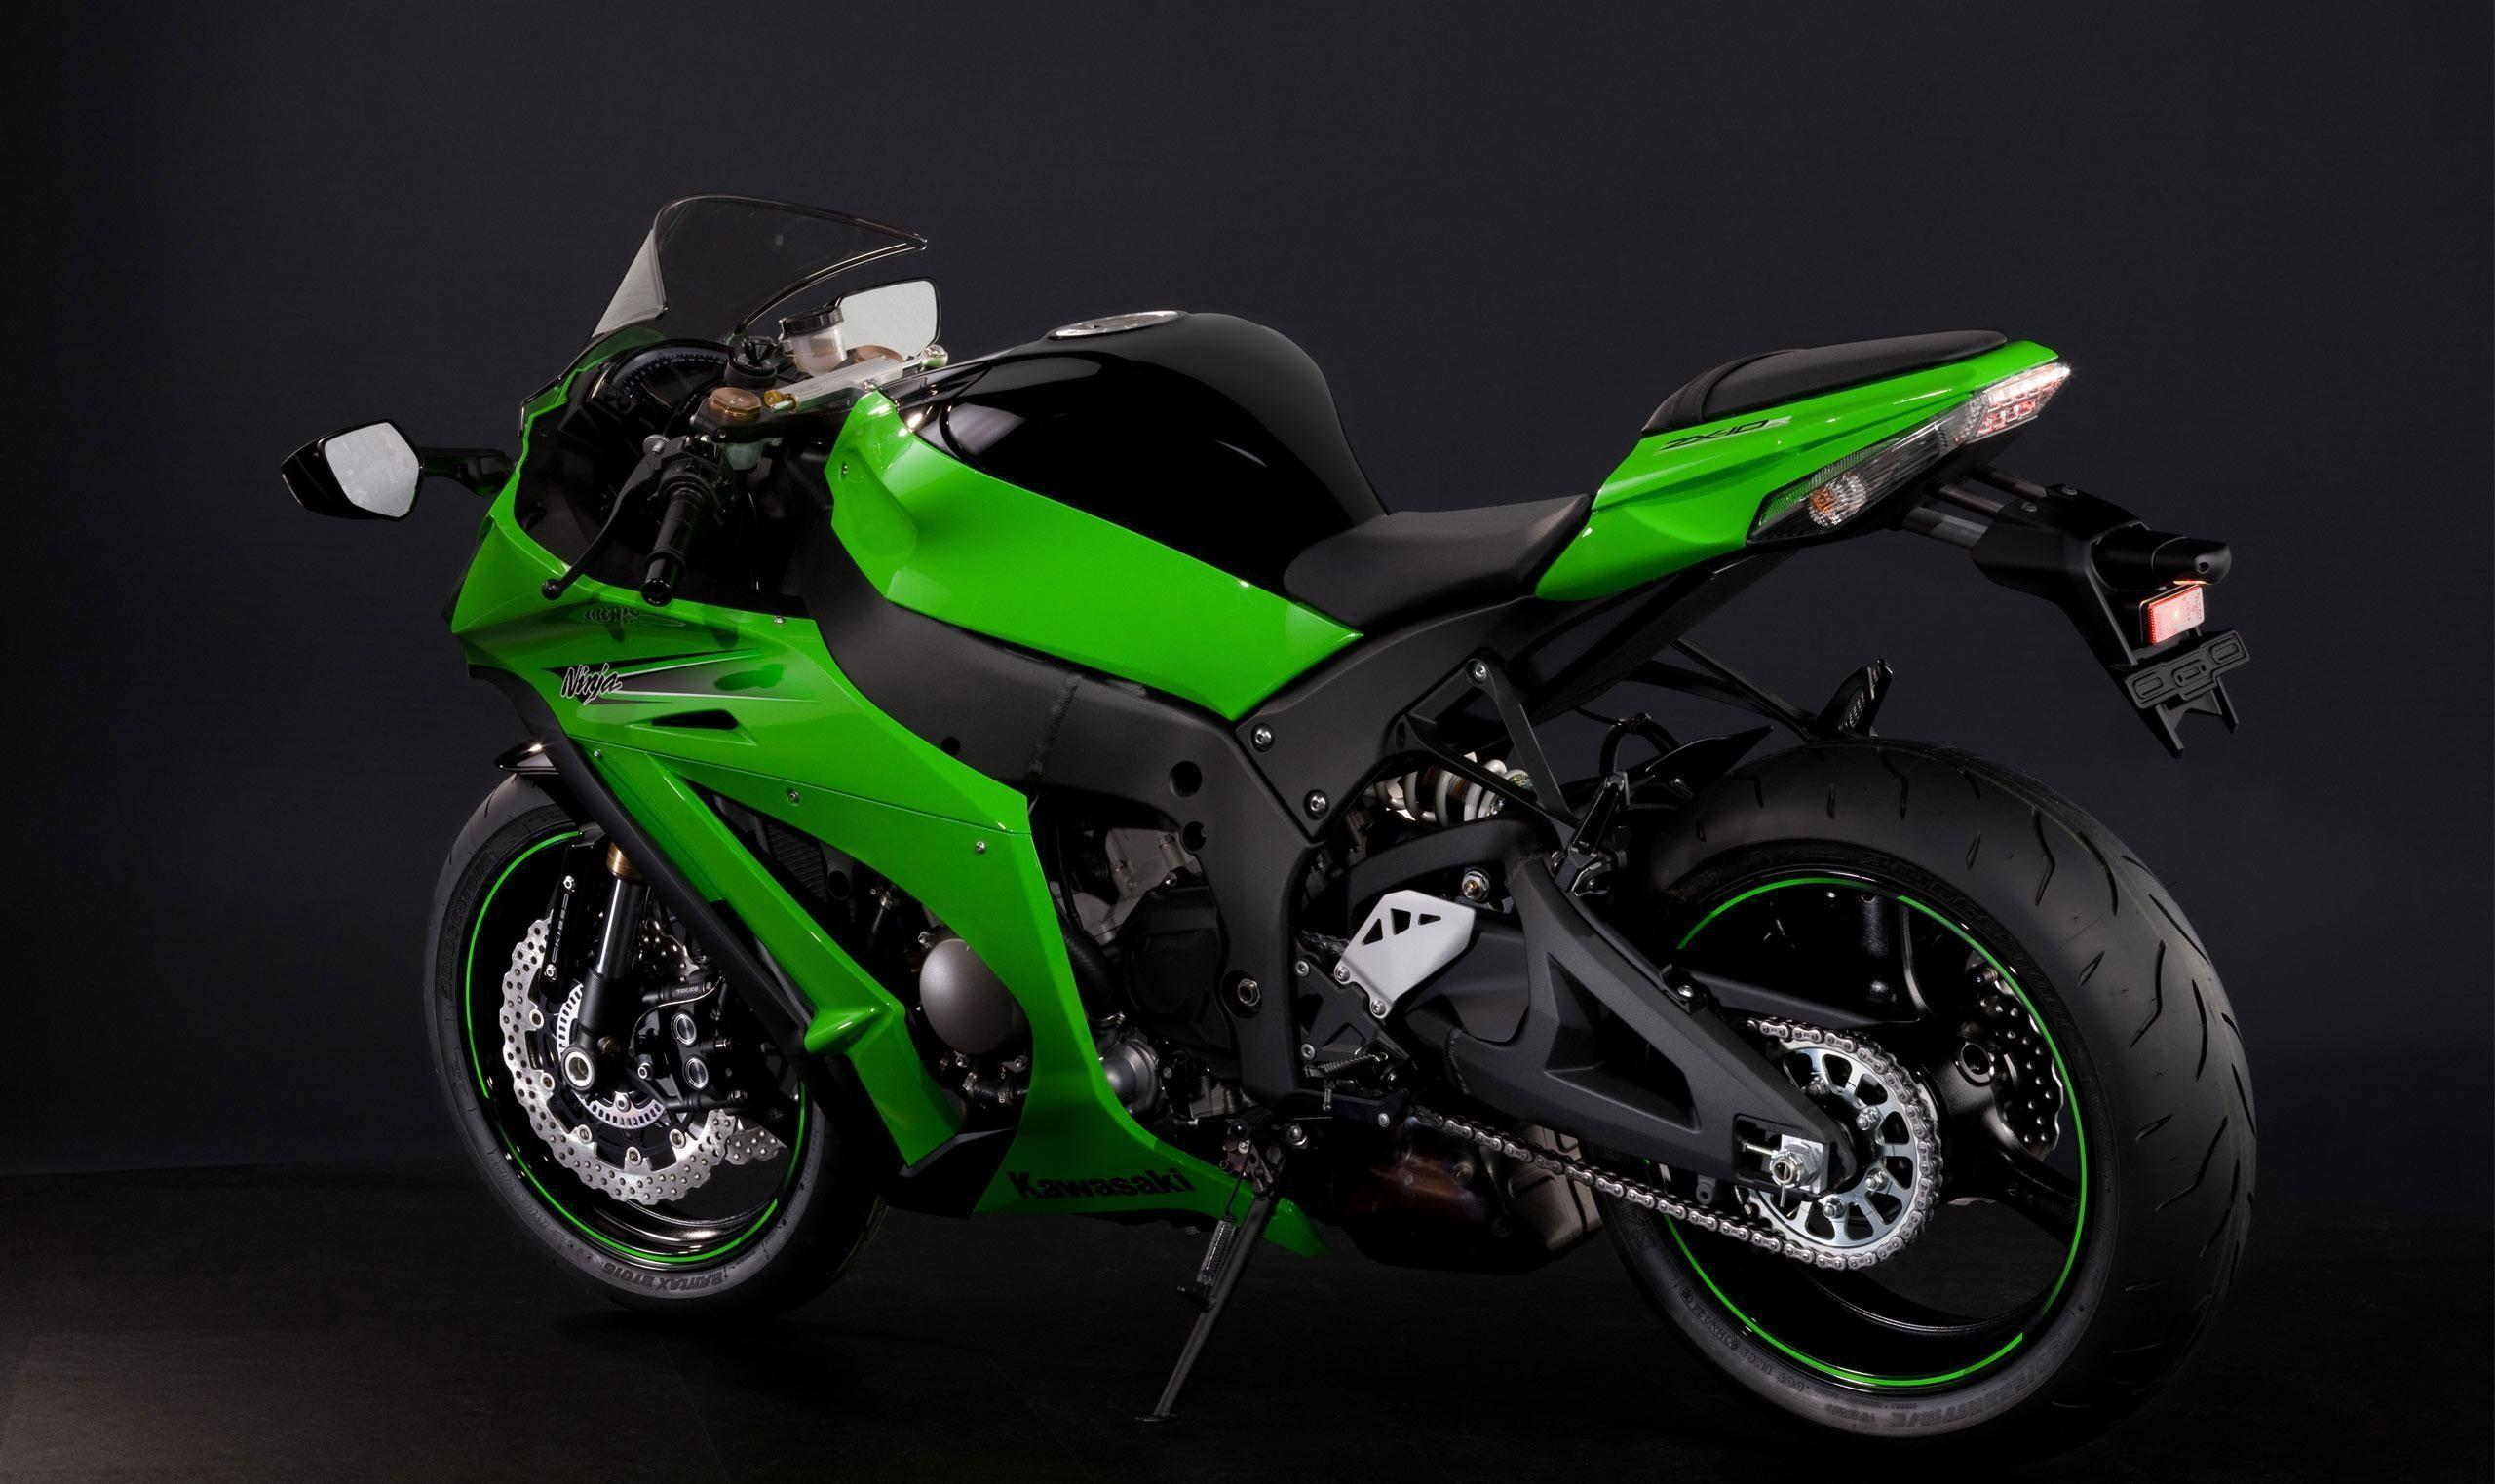 Kawasaki Ninja Zx10r Wallpapers HD Desktop Wide